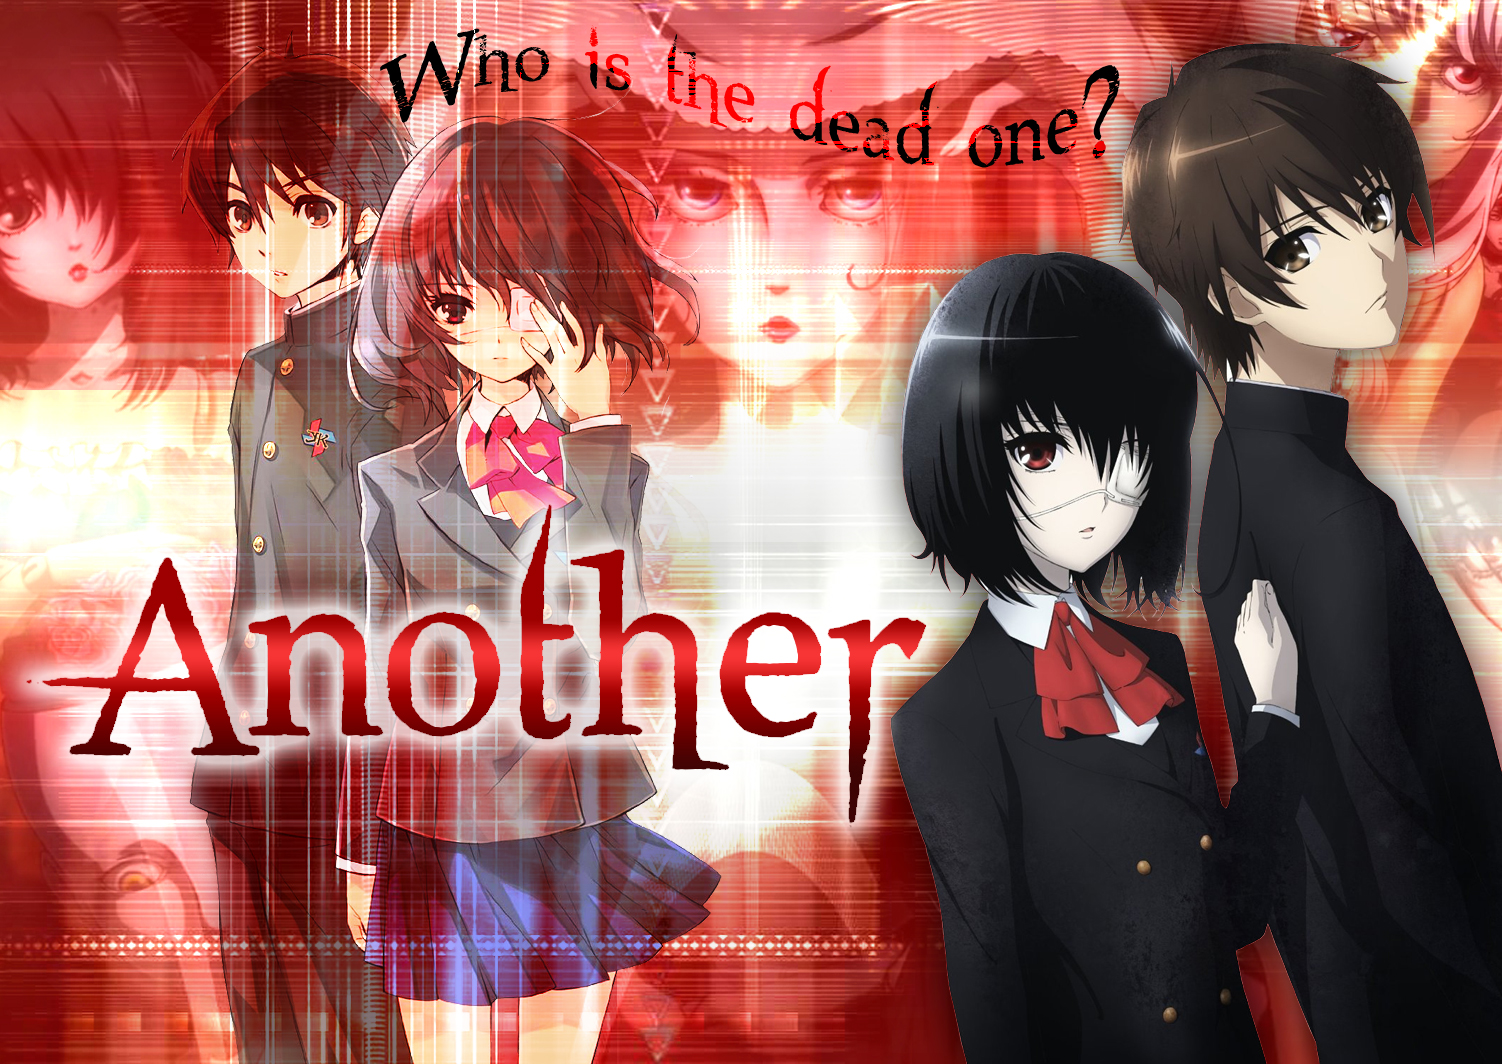 Sinopsis dan list episode anime another